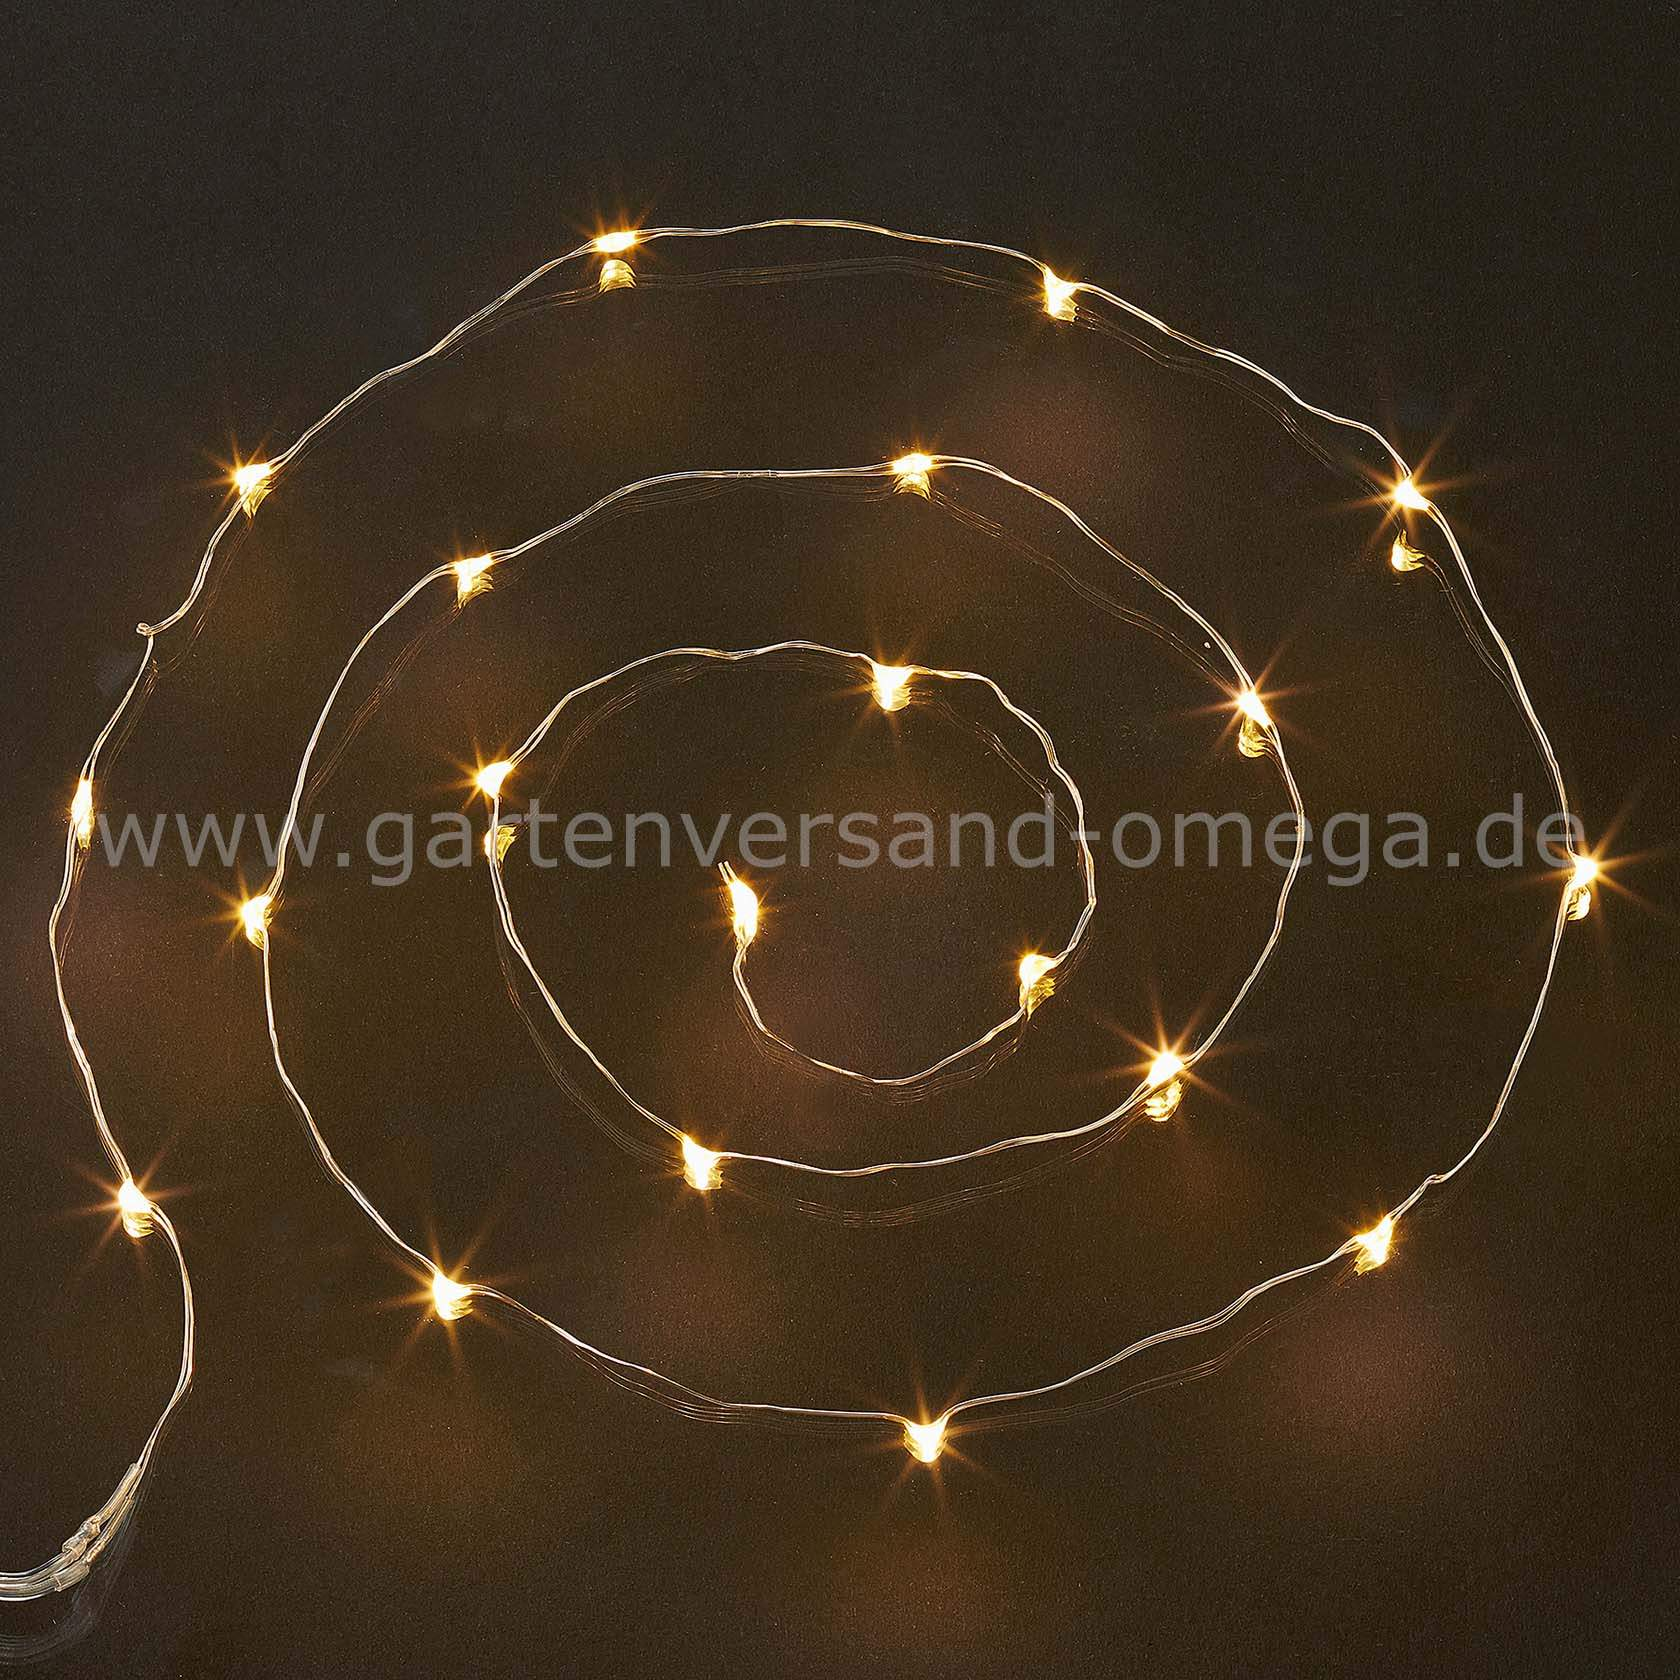 Batteriebetriebene LED Lichterkette mit Drahtkabel WarmWeiss